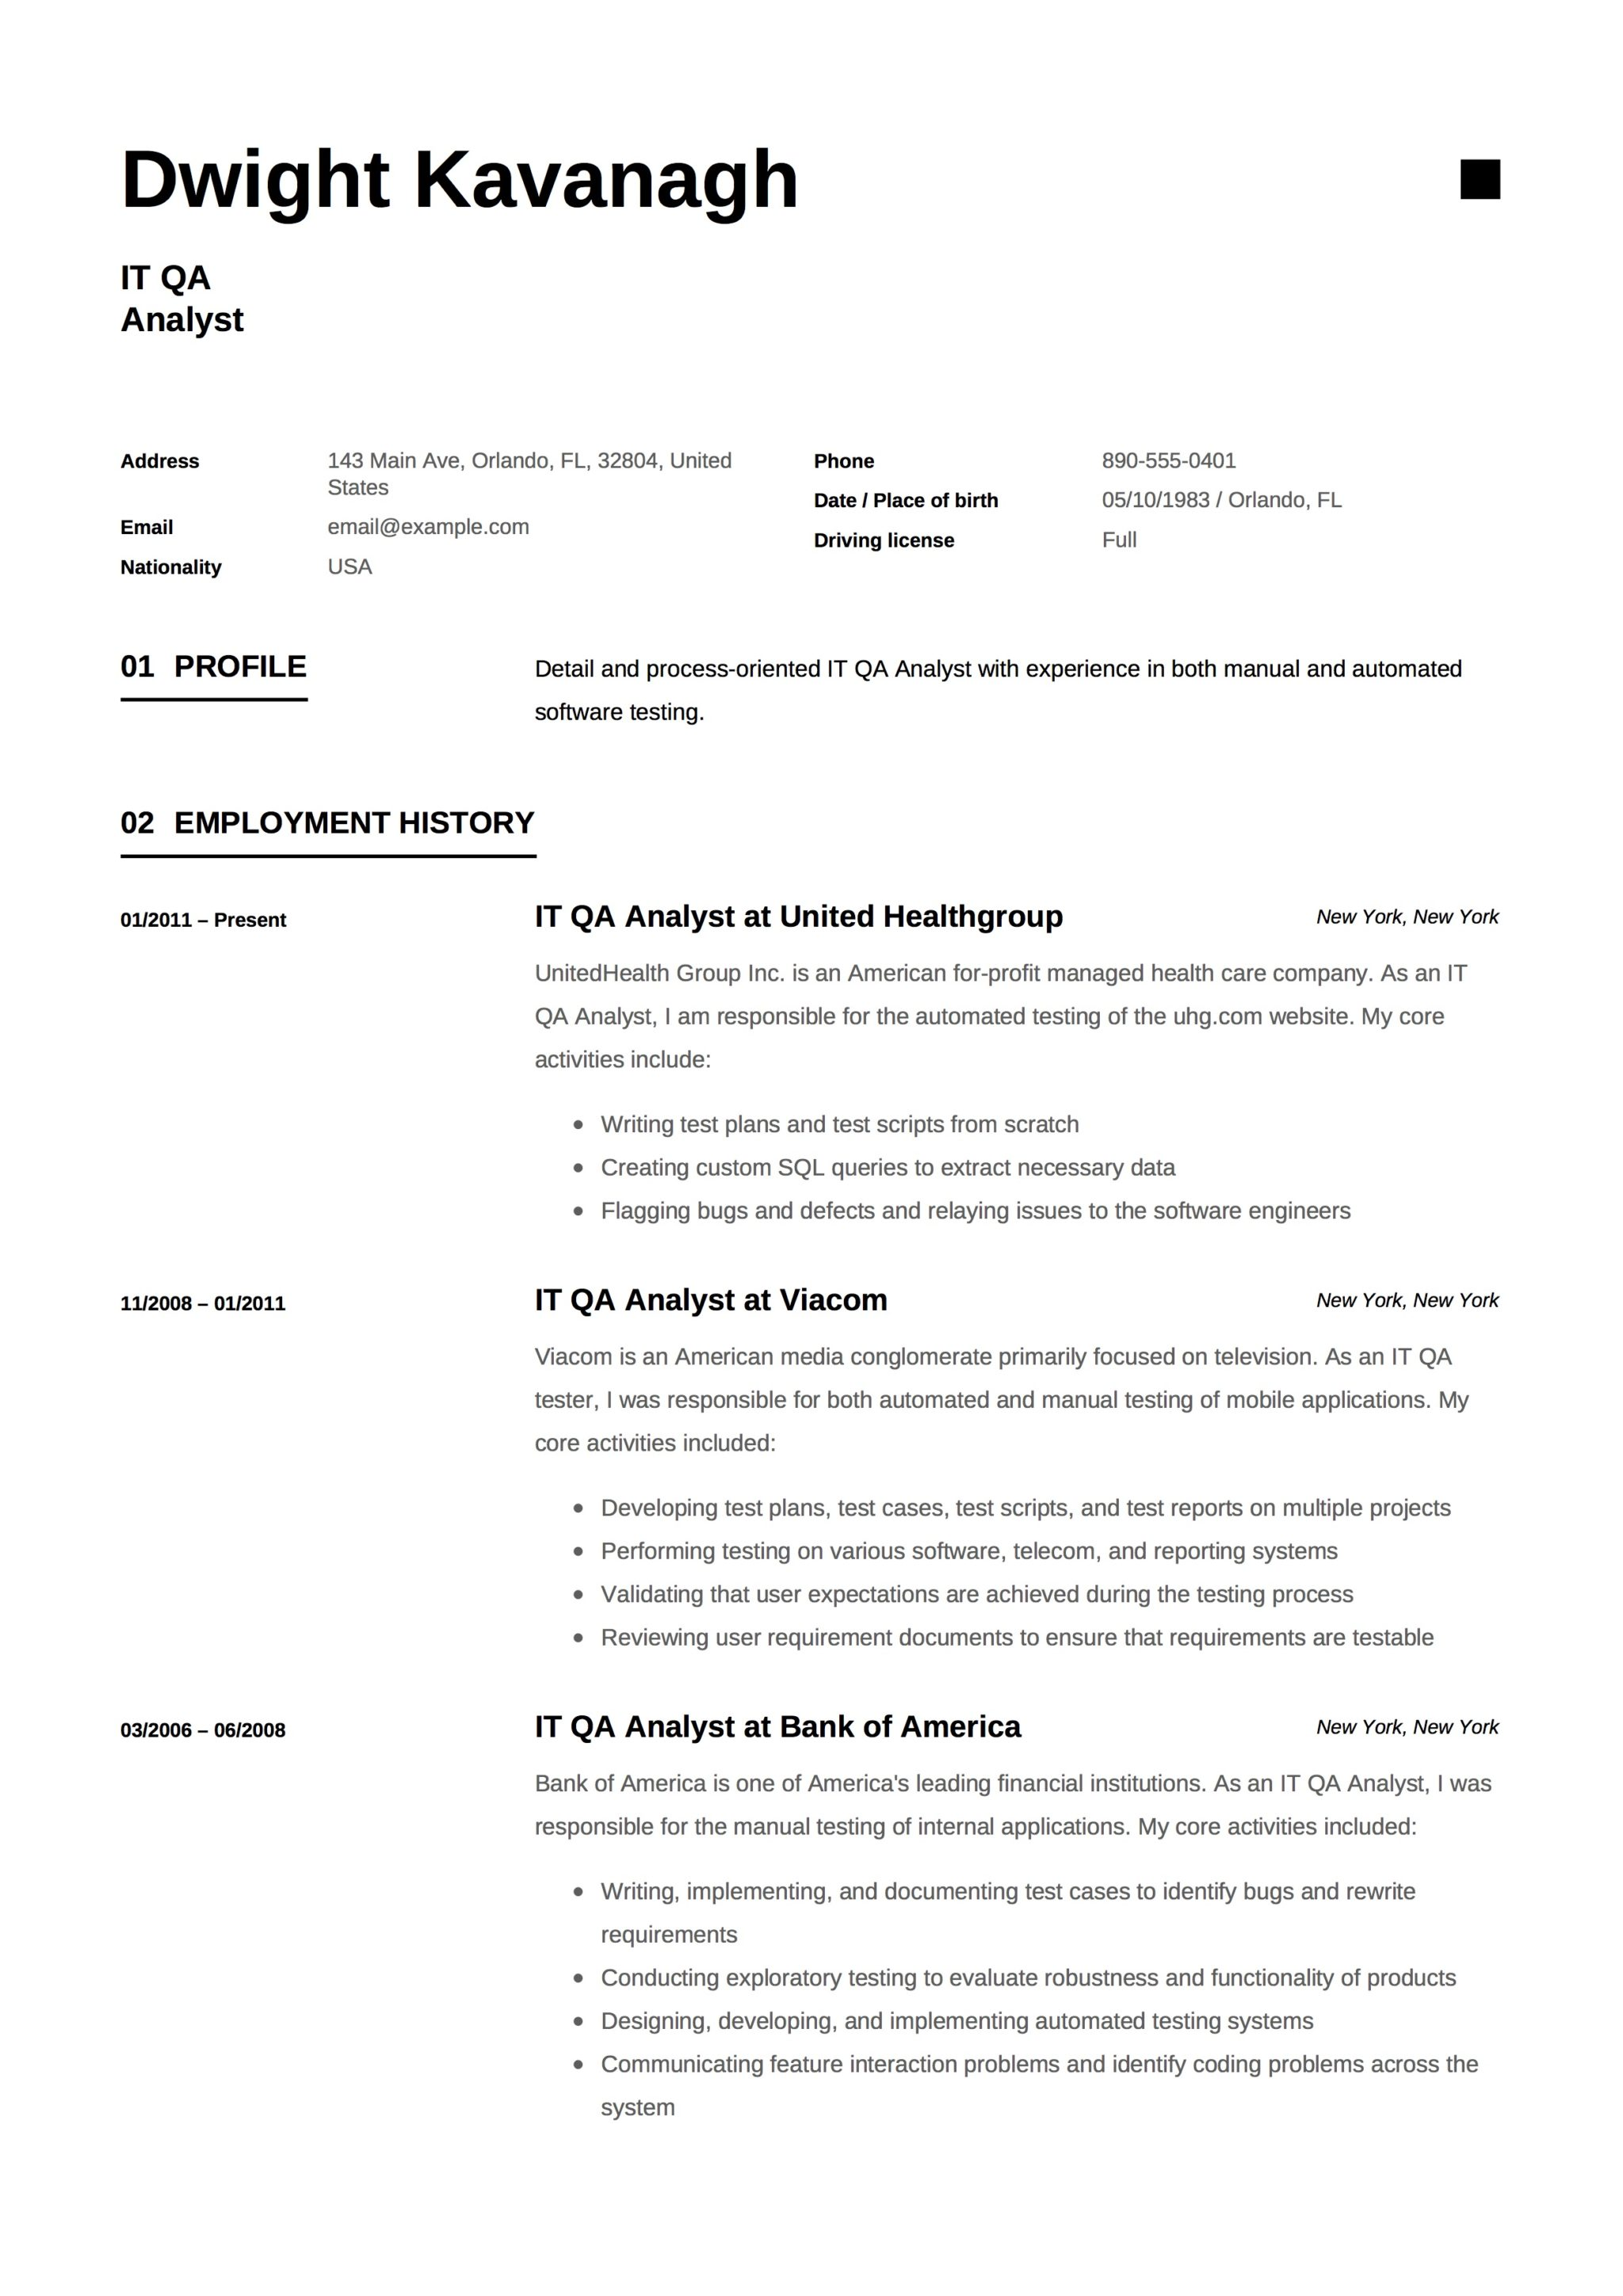 12 IT QA Analyst Resume Sample(s) - 2018 (Free Downloads)